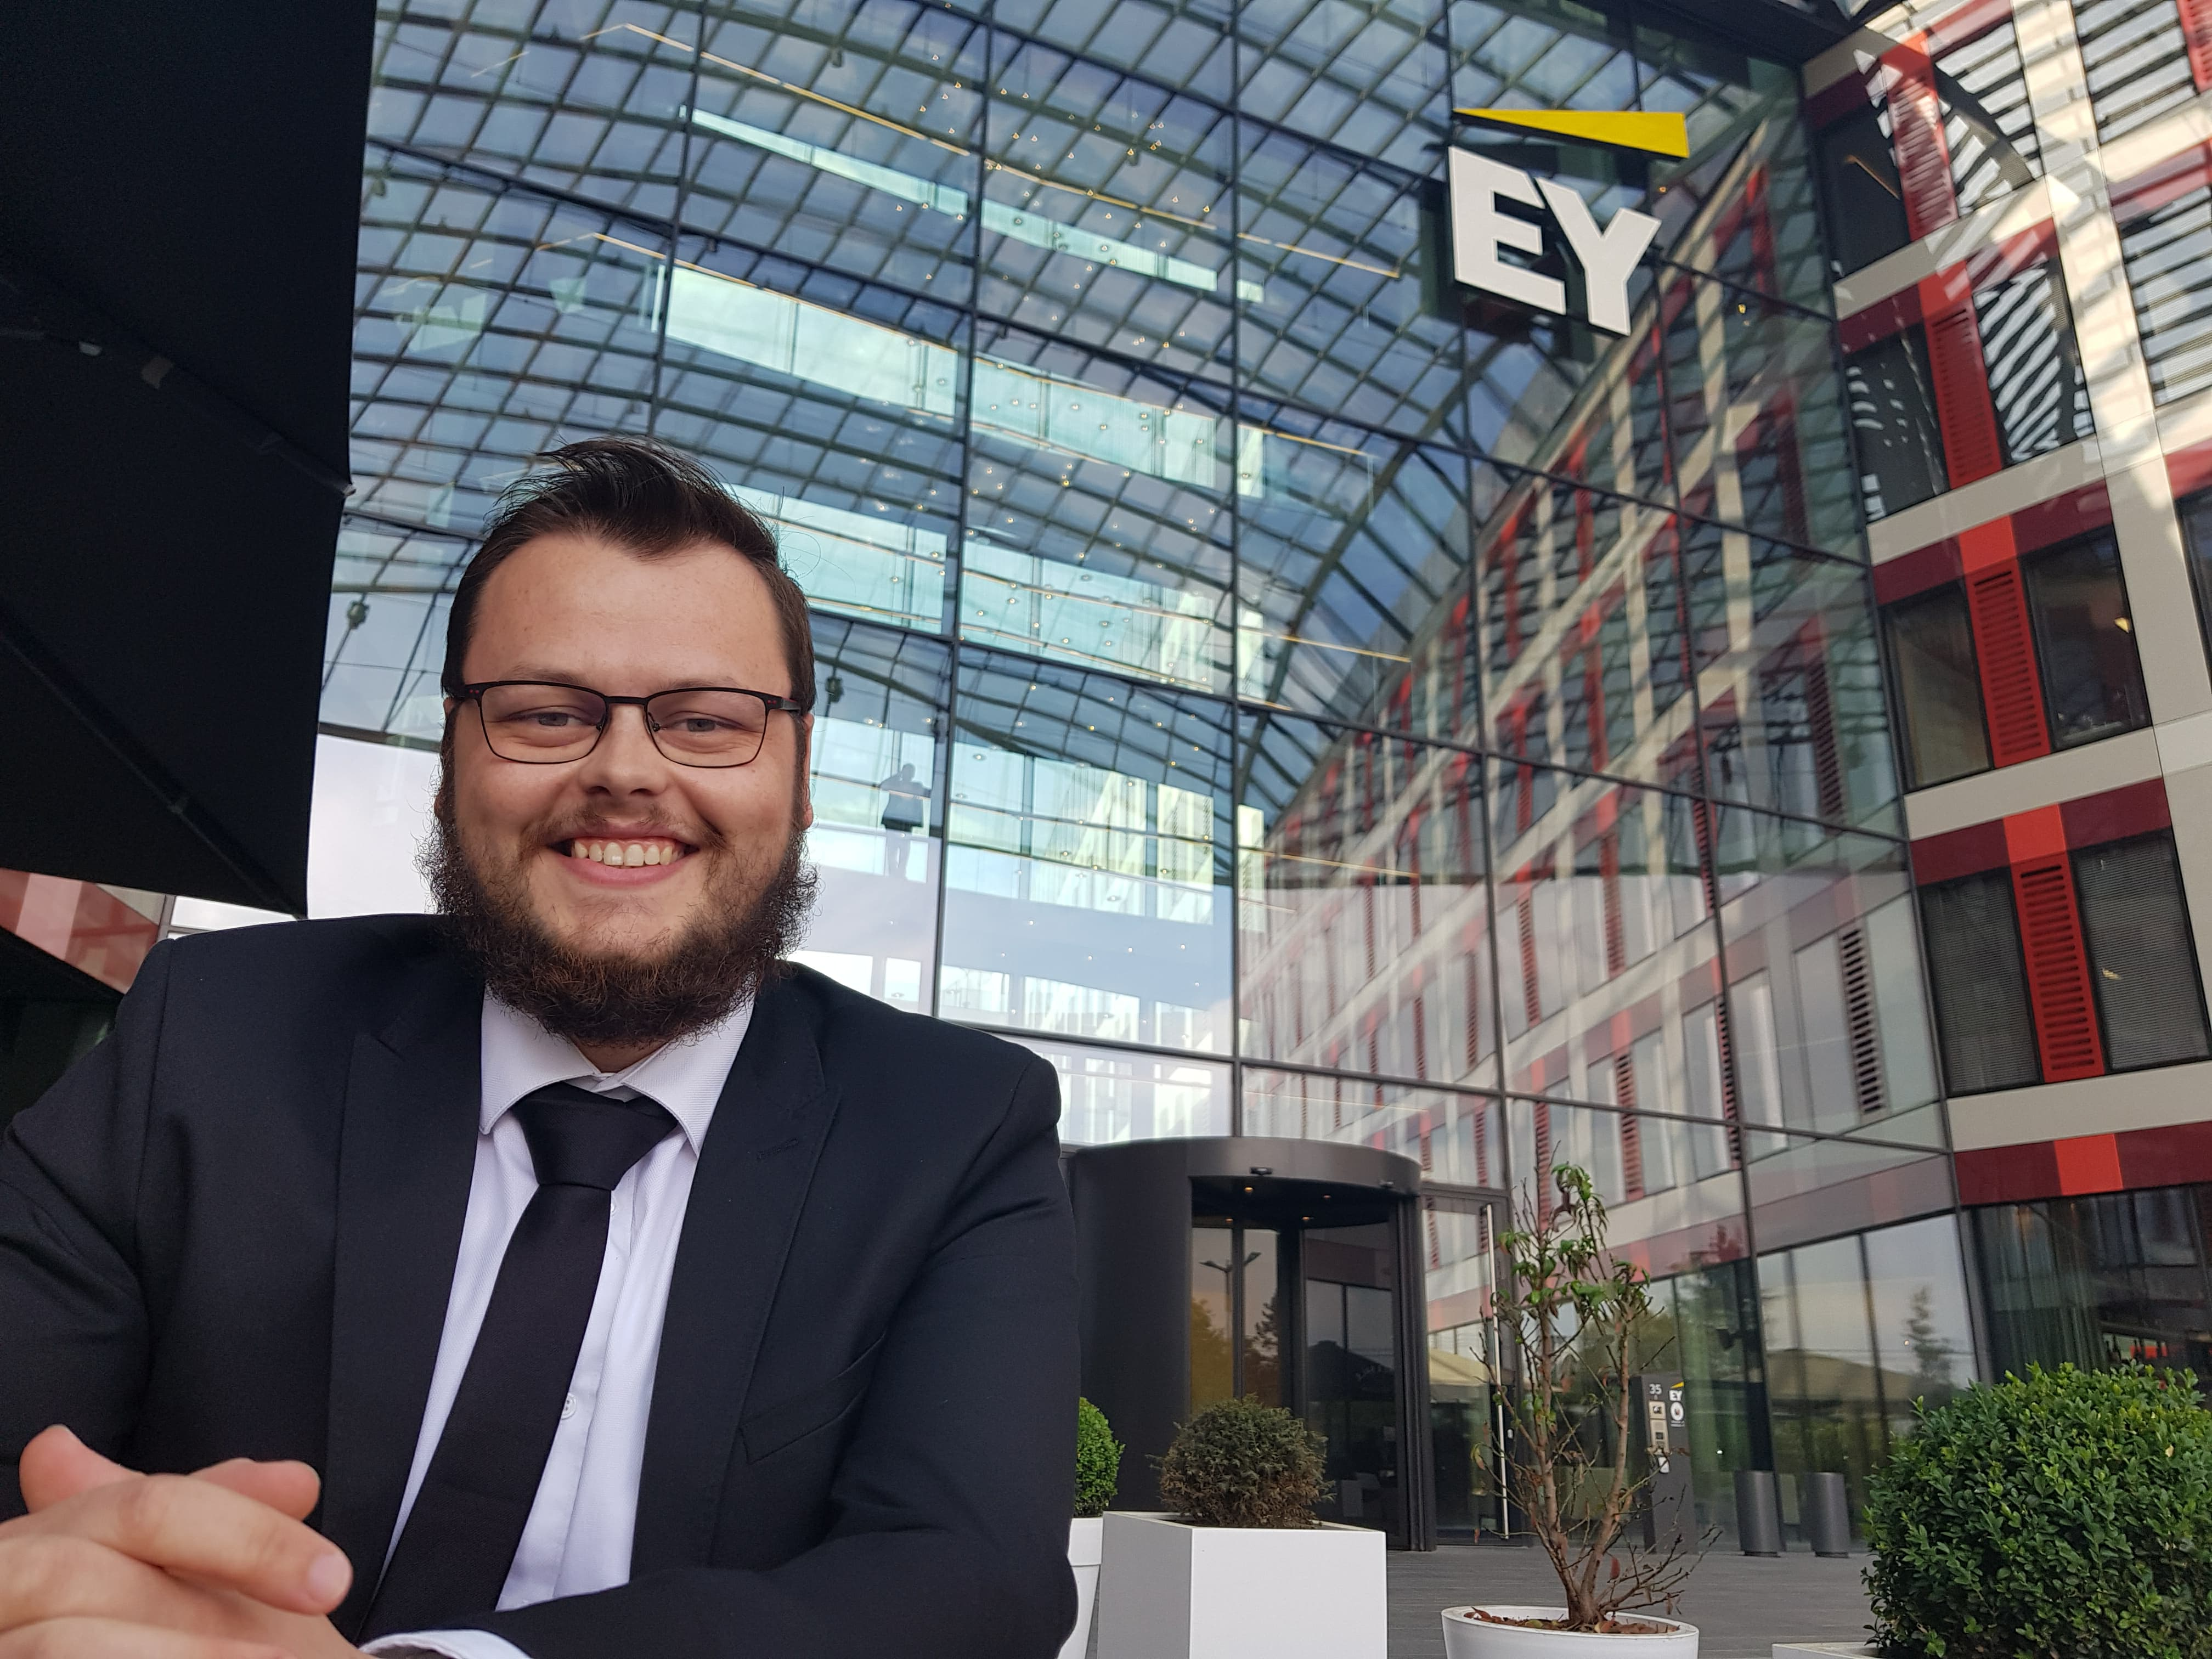 Corentin, Master CCA, en stage chez Ernst & Young au Luxembourg FI Master CCA